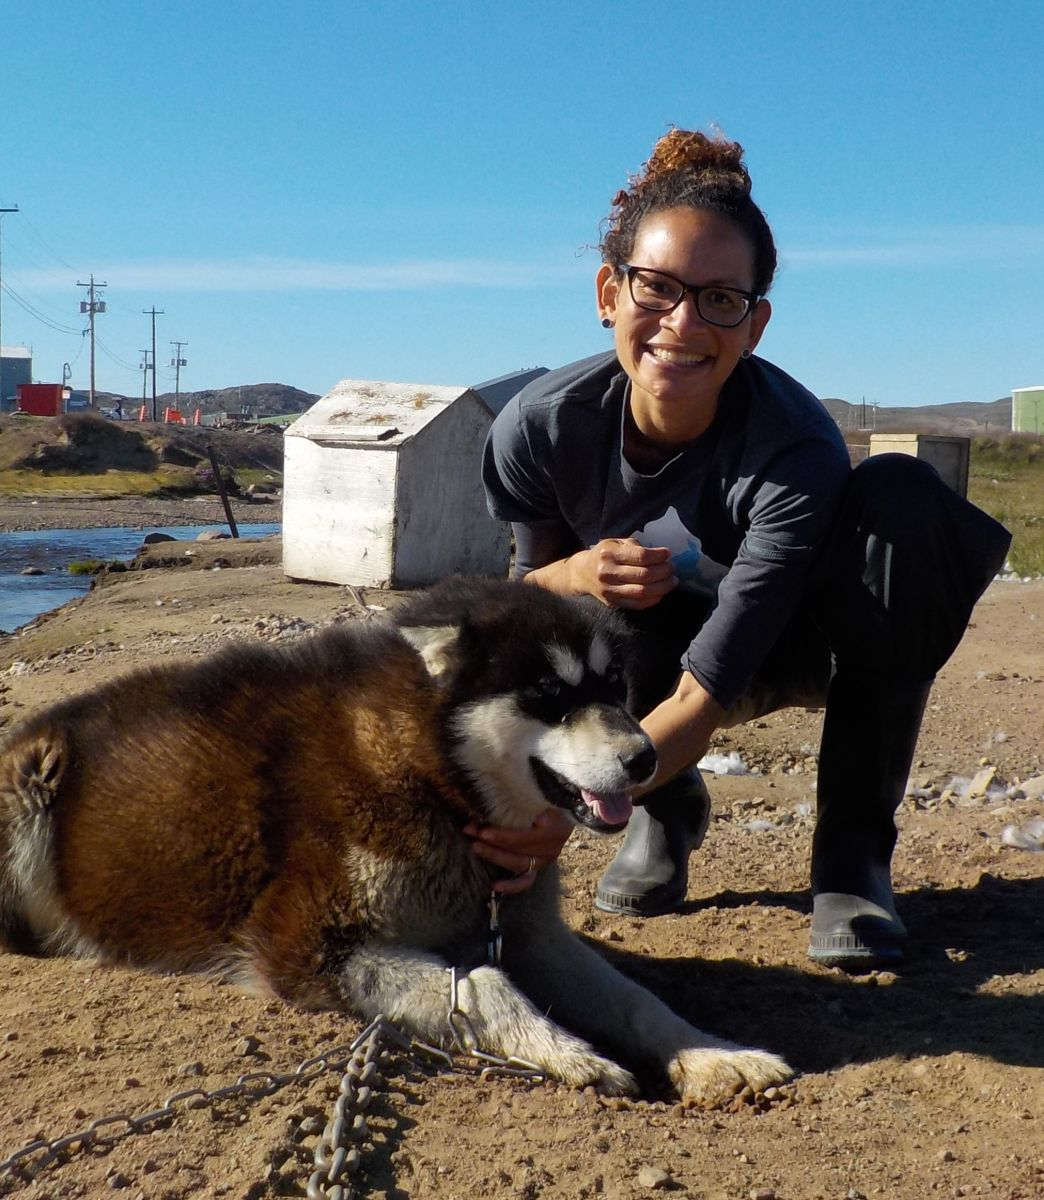 Danielle Julien, PhD student at University of Guelph's OVC, is studying dog bite incidents in southern Ontario rural and urban households, as well as looking at rabies vaccination status.